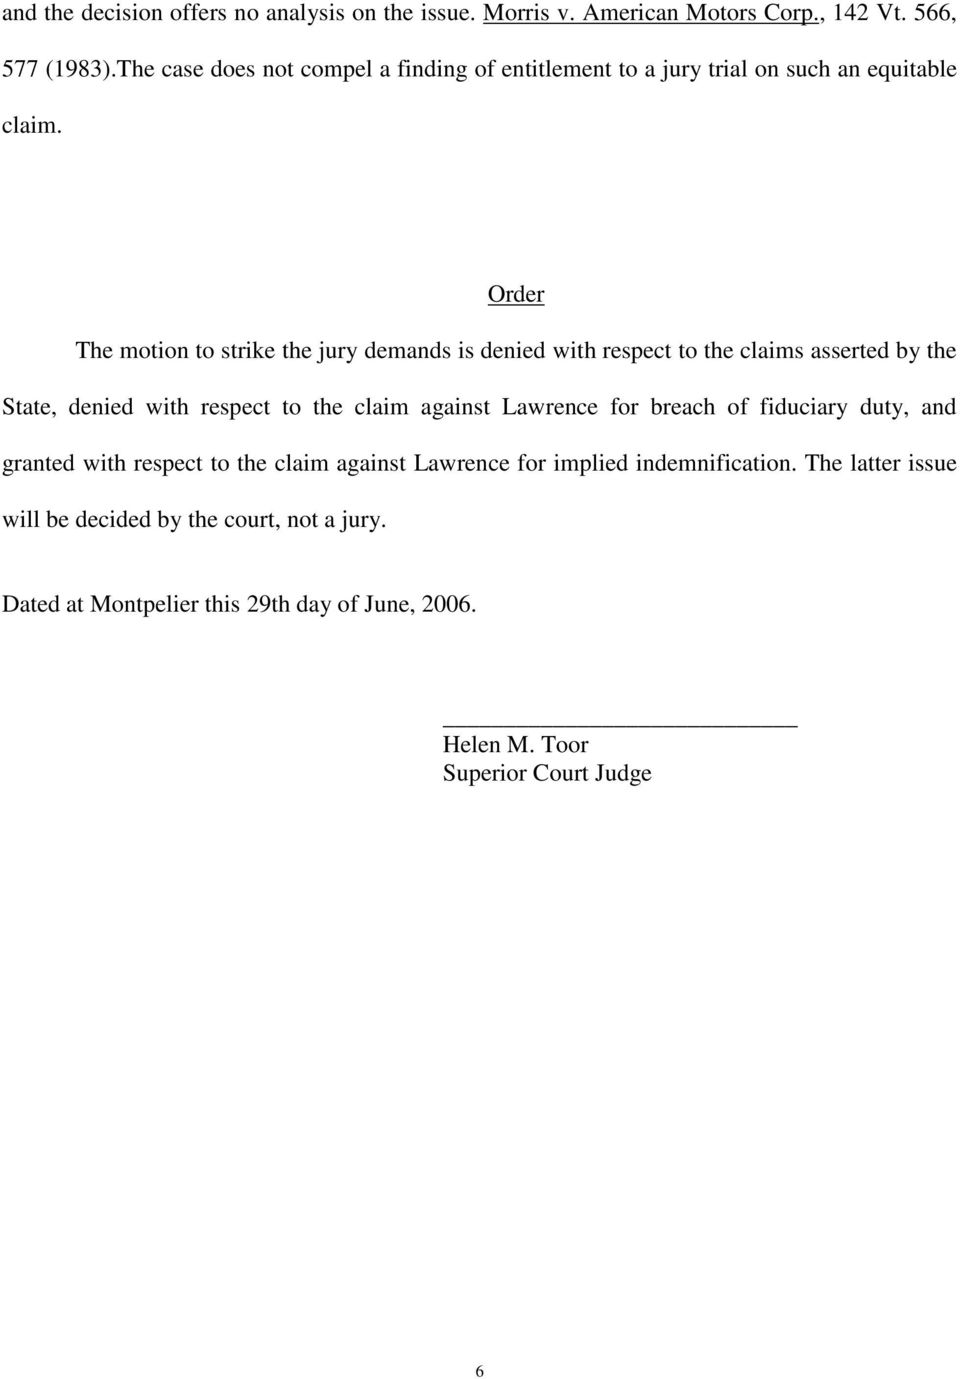 Order The motion to strike the jury demands is denied with respect to the claims asserted by the State, denied with respect to the claim against Lawrence